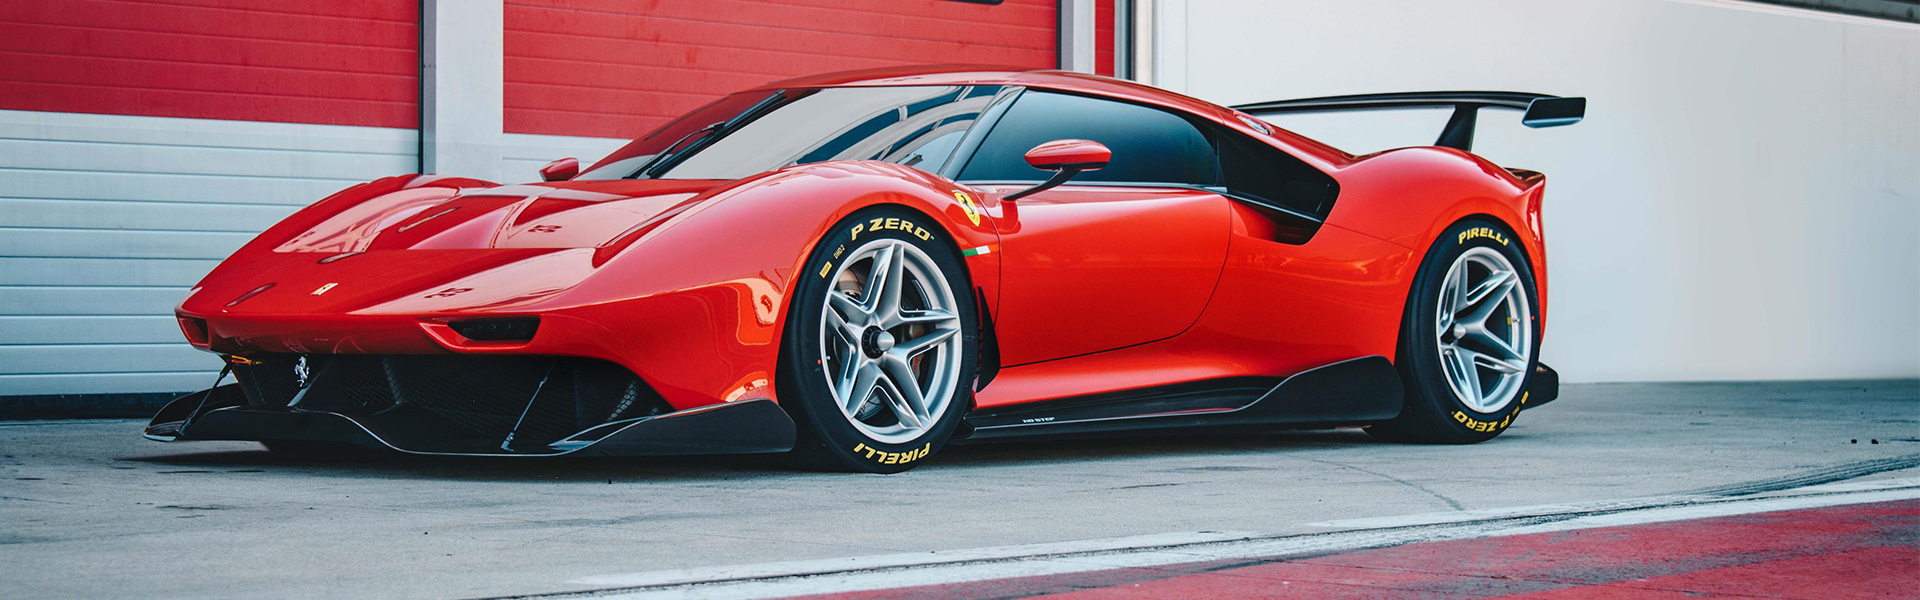 Why are most Ferrari's red?